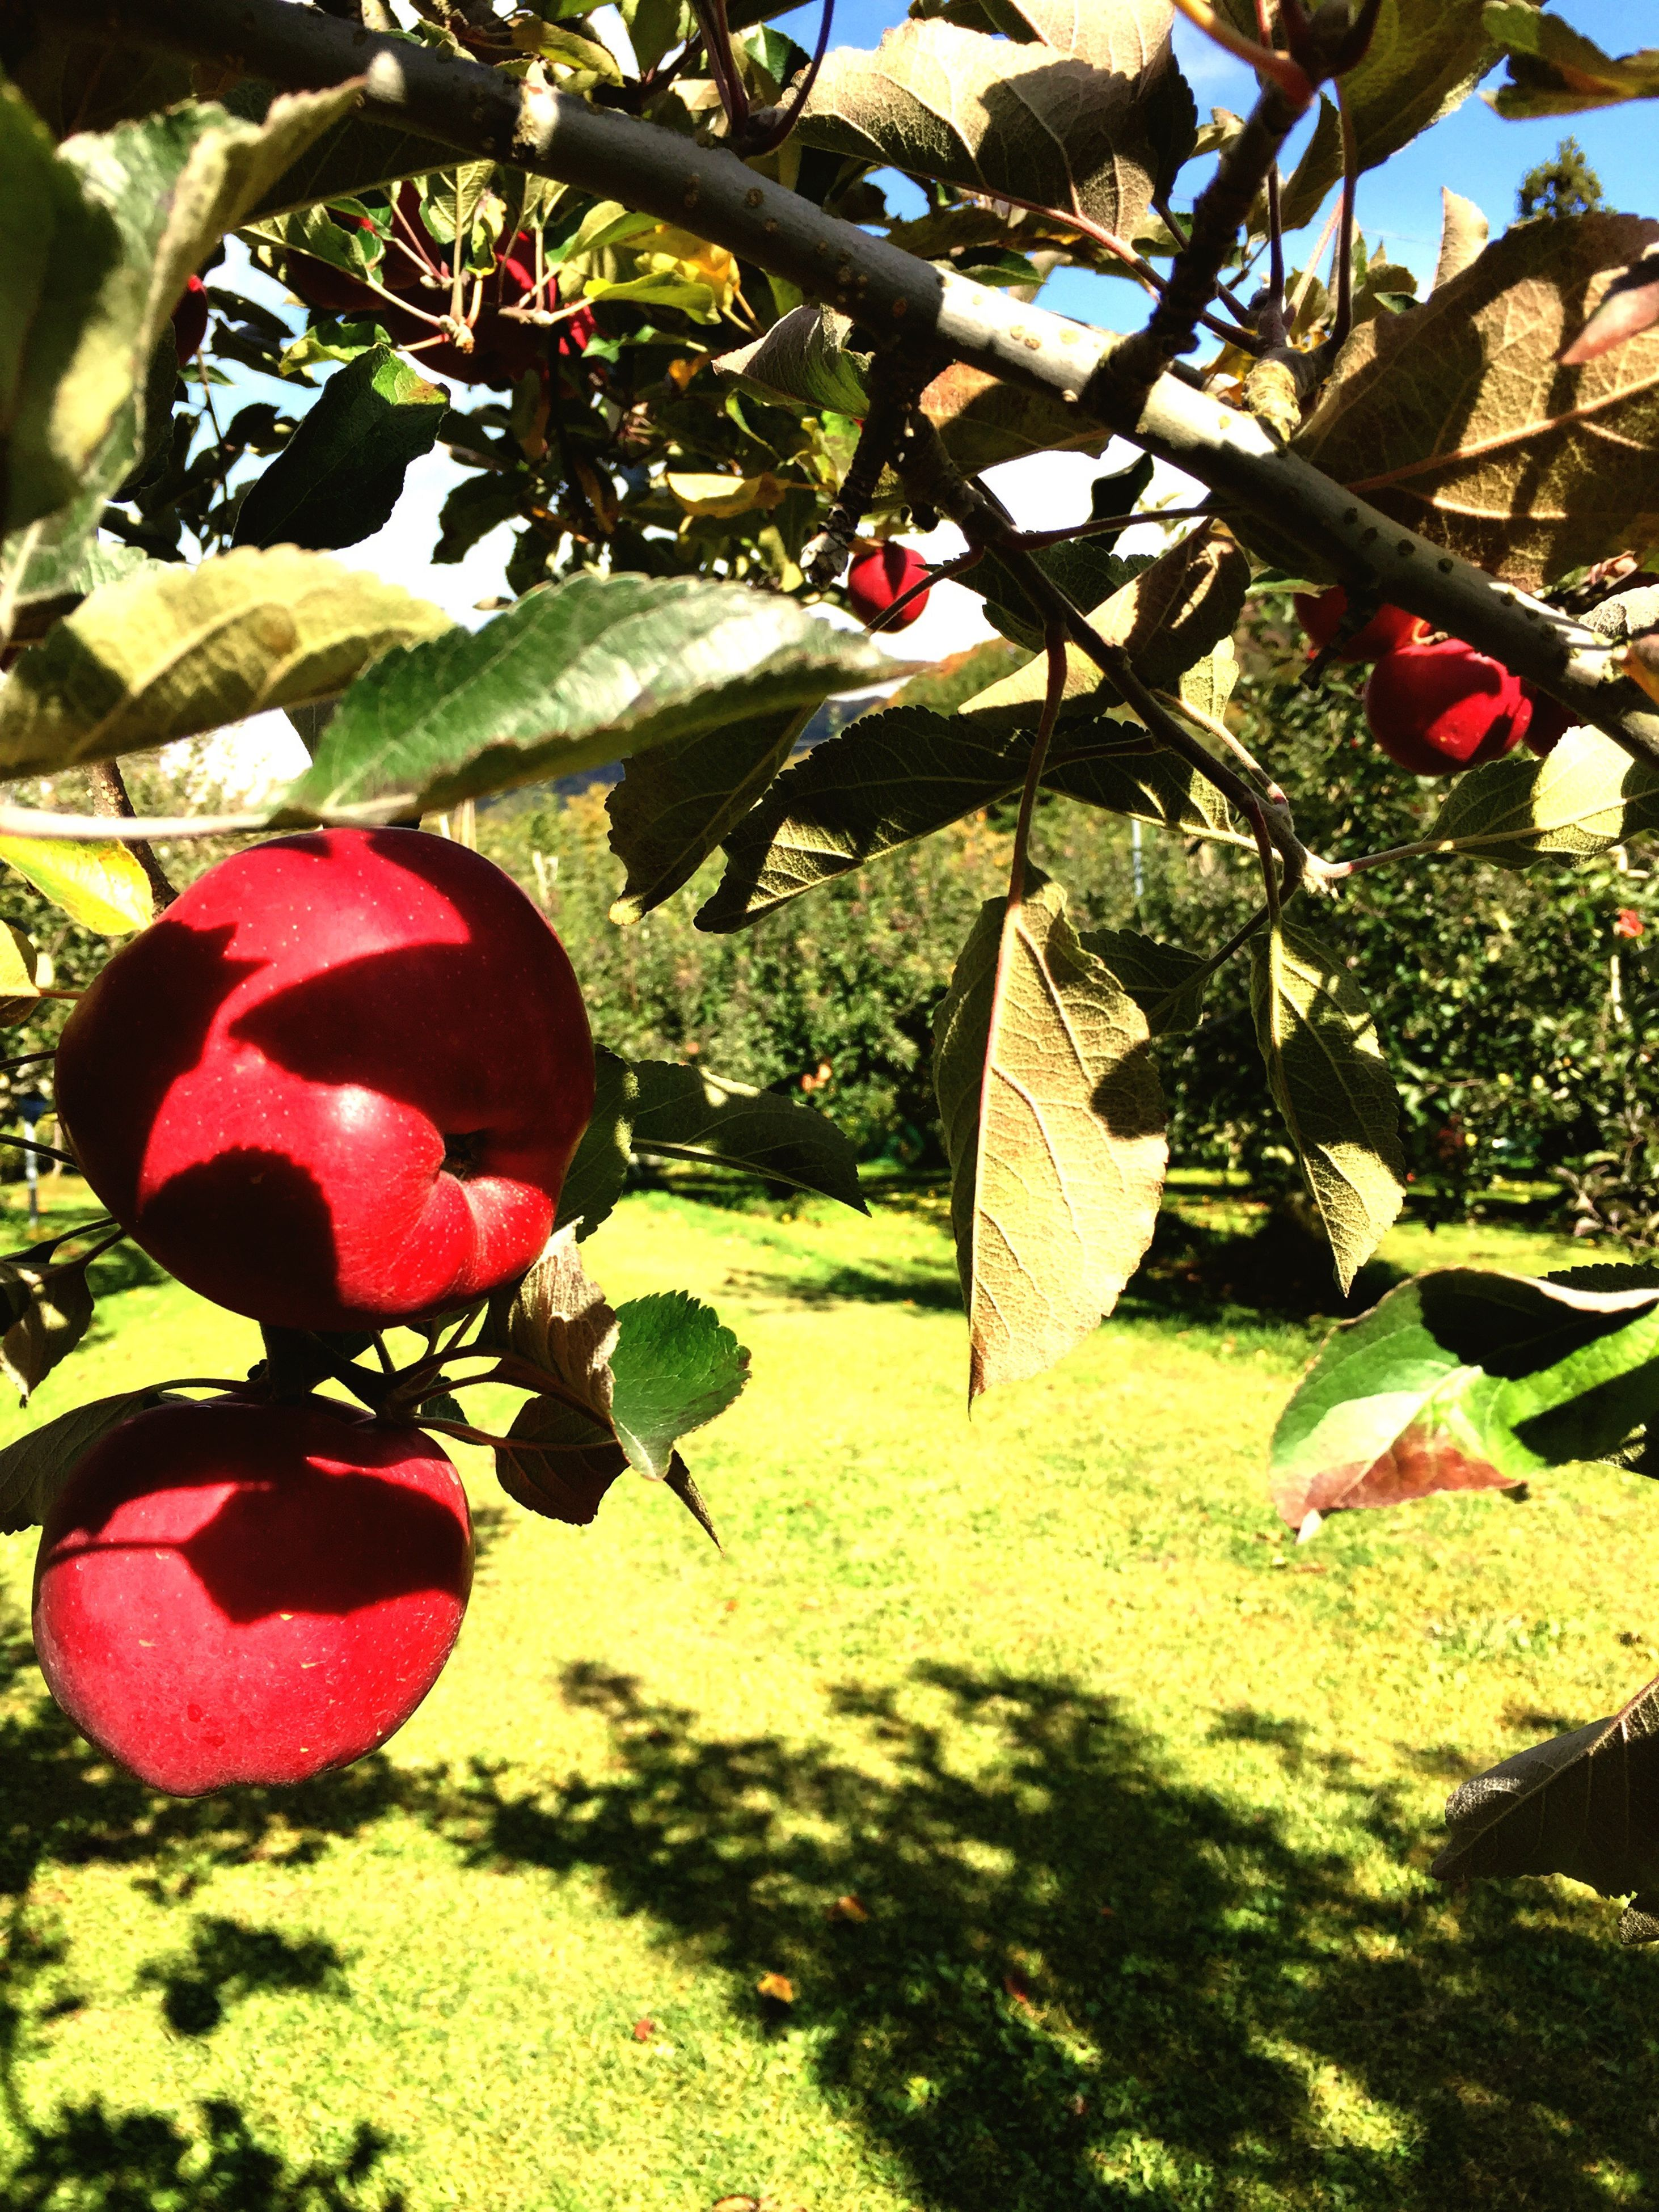 growth, tree, leaf, freshness, red, flower, plant, fruit, nature, green color, hanging, branch, day, beauty in nature, sunlight, close-up, pink color, fragility, outdoors, growing